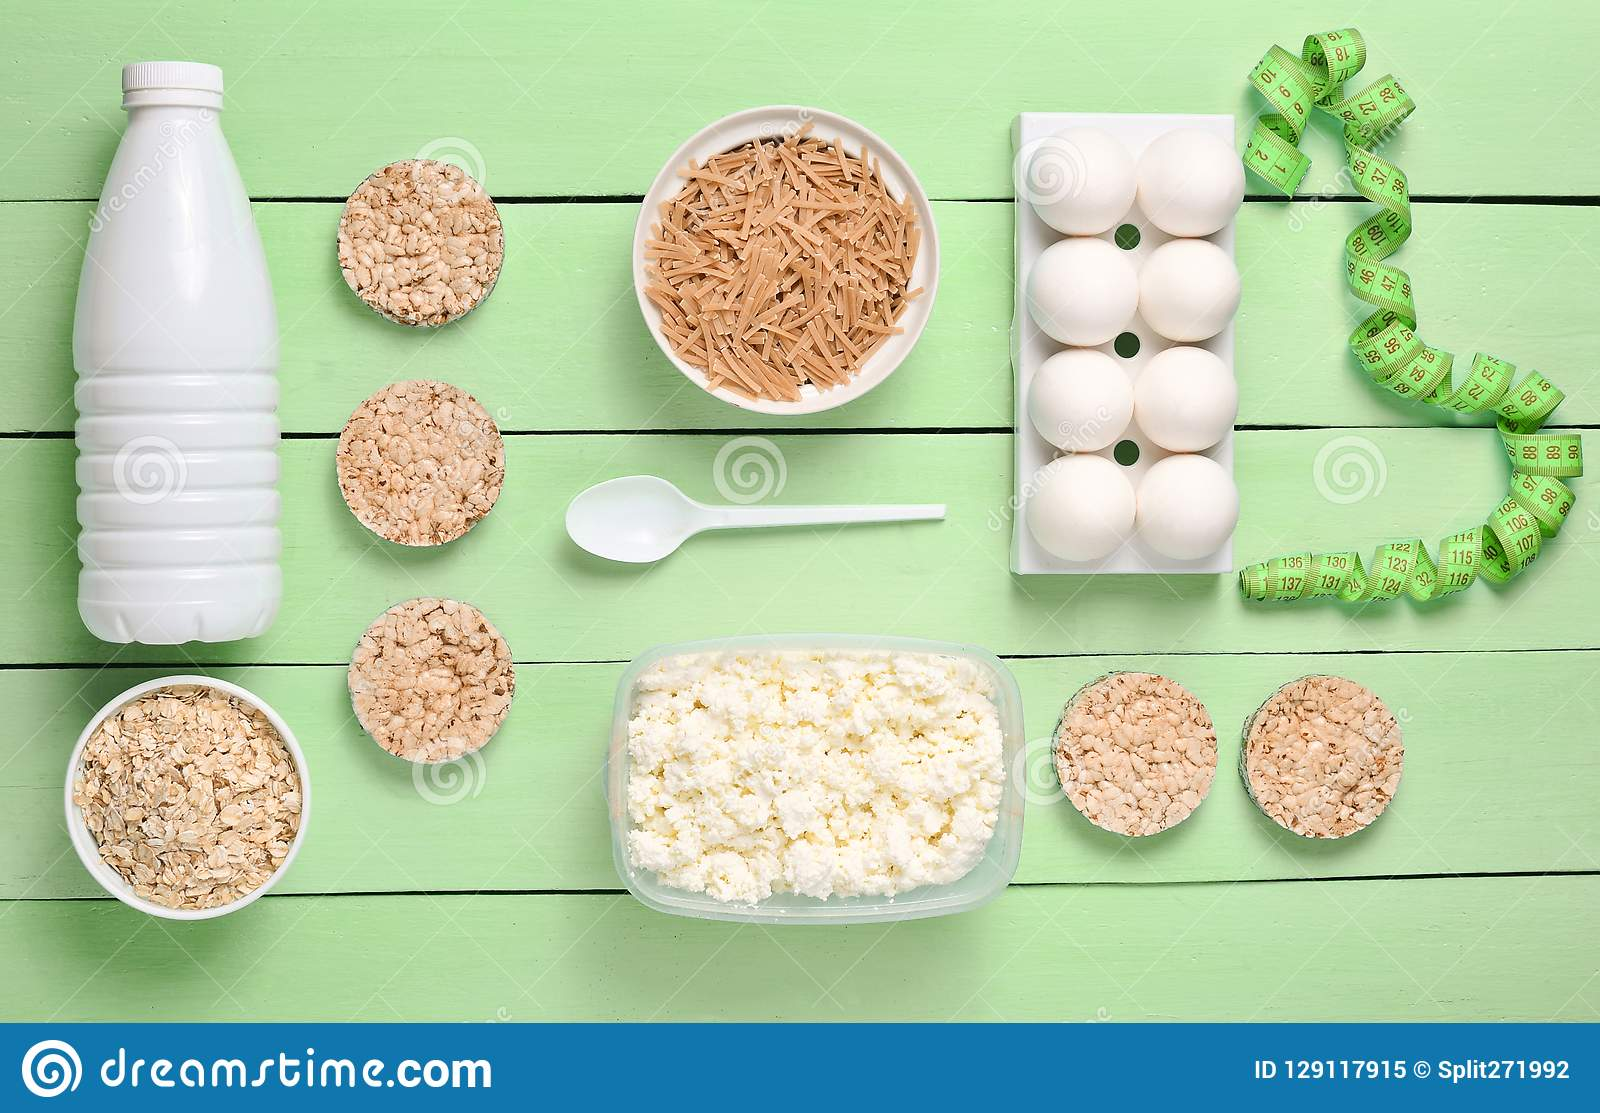 Diet, healthy food. Bottle of yogurt, crispy round bread, buckwheat noodles, oatmeal, cottage cheese, egg tray on a blue wooden b